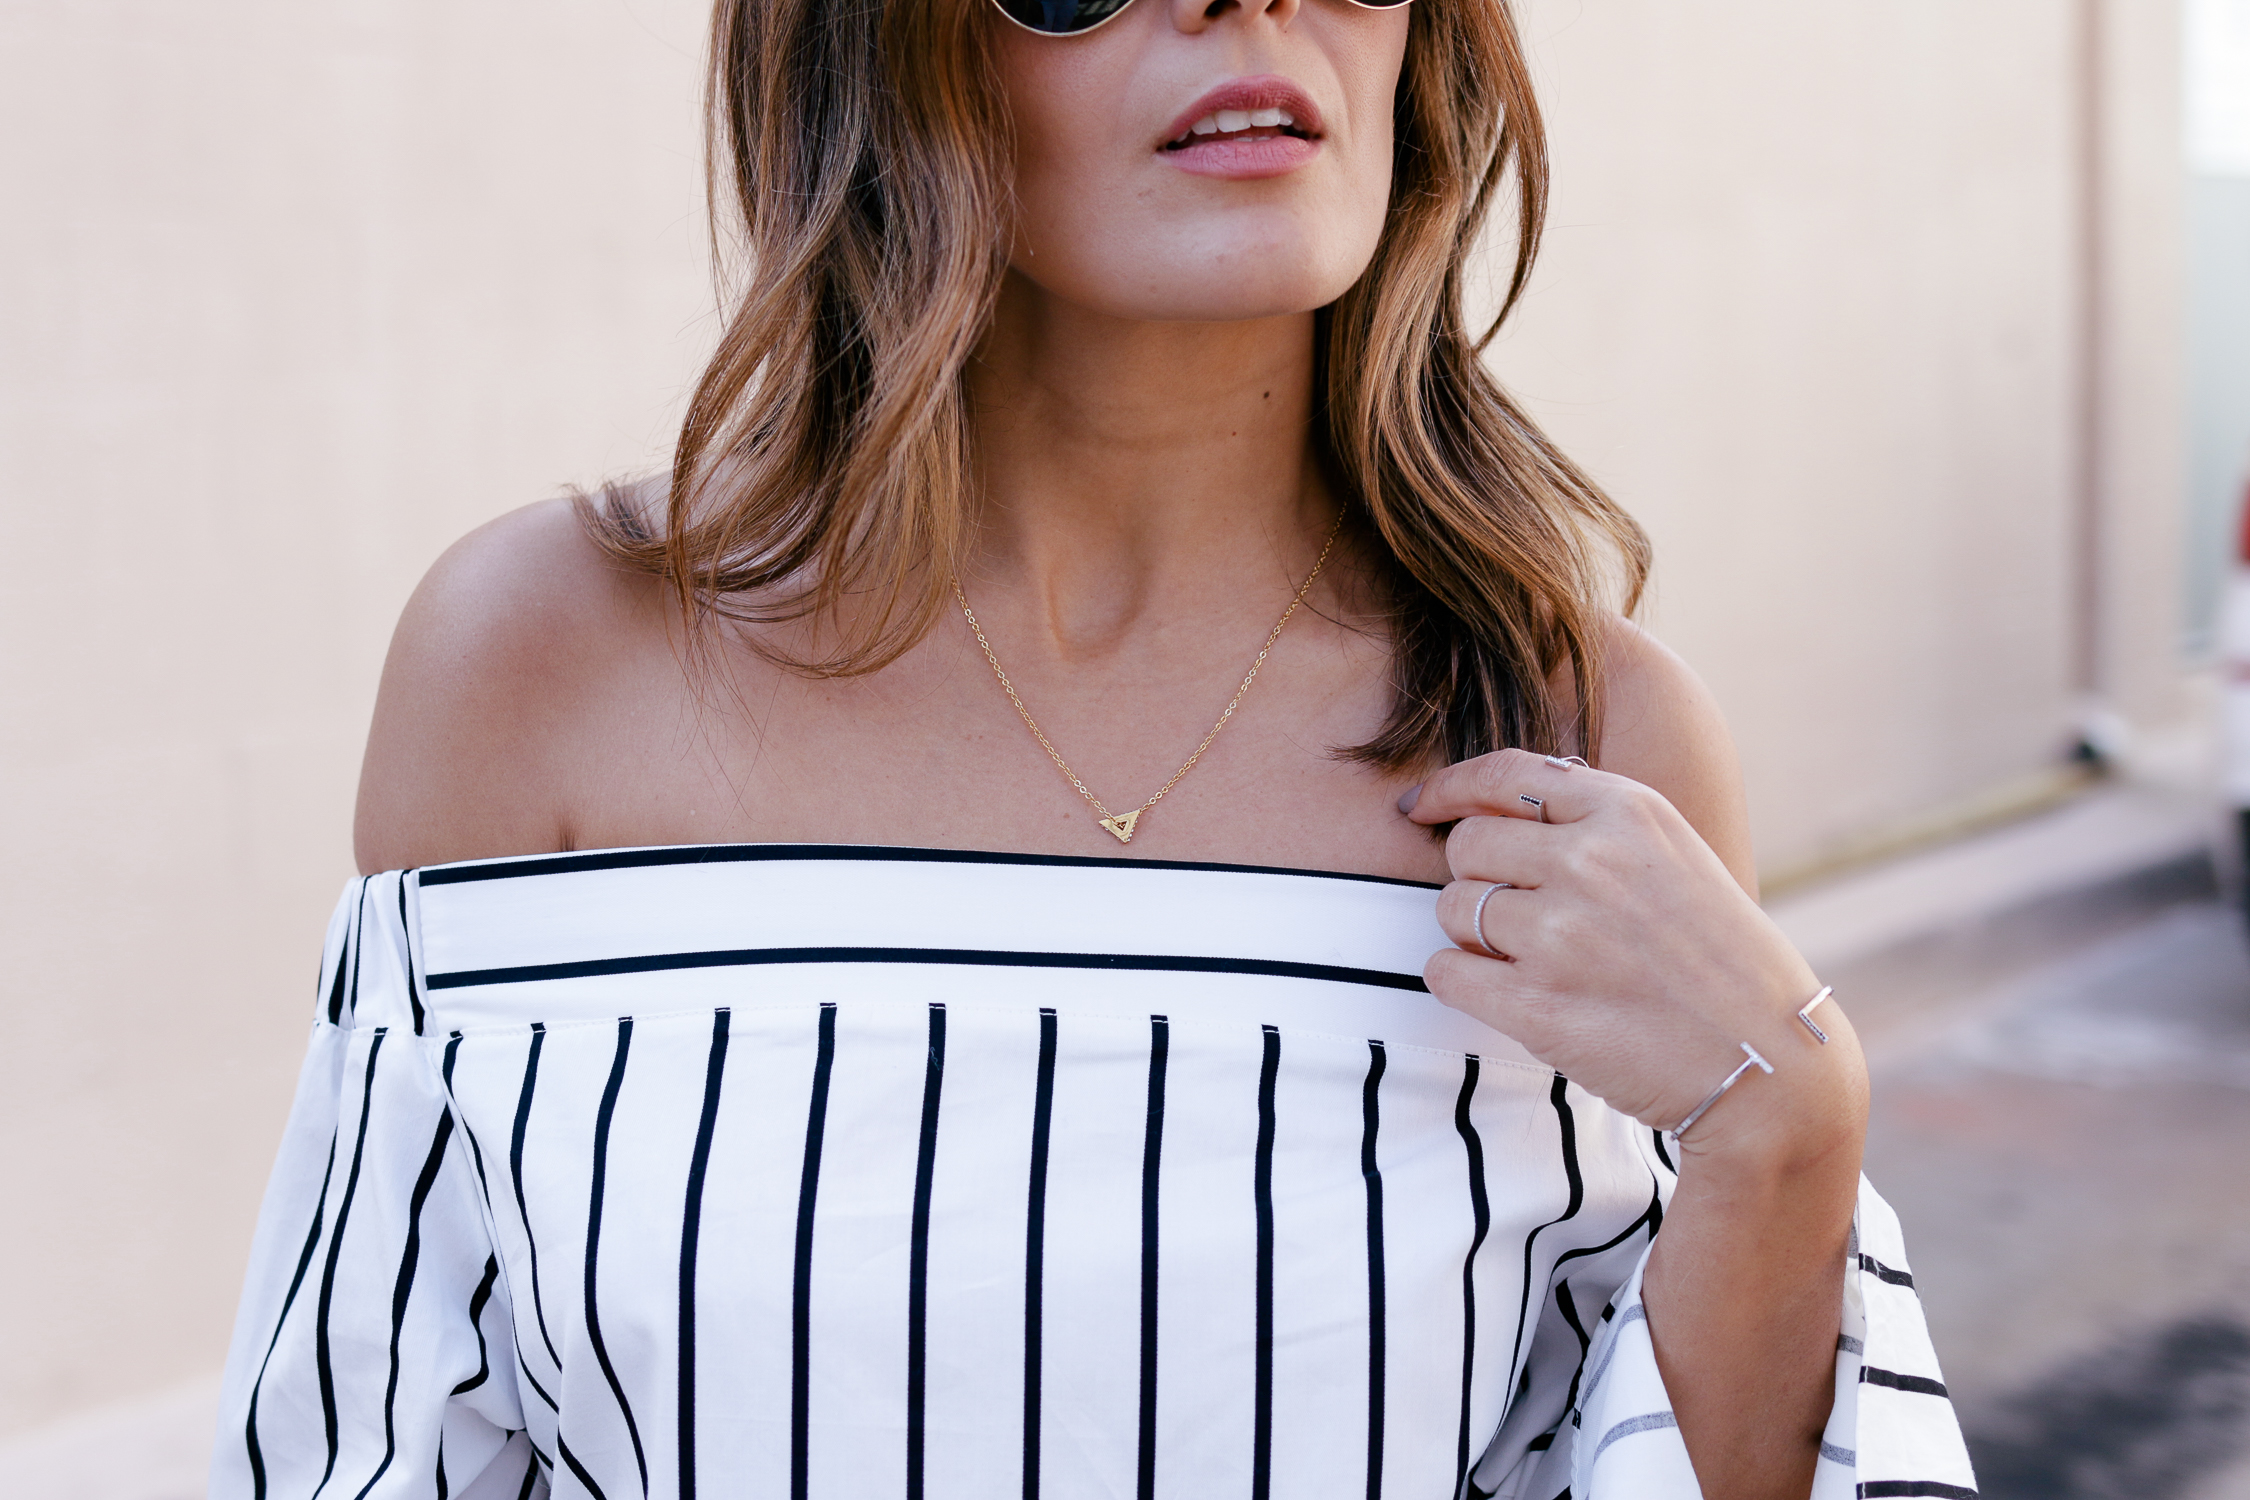 Off the shoulder STriped top with Stella Valle for Target Necklace